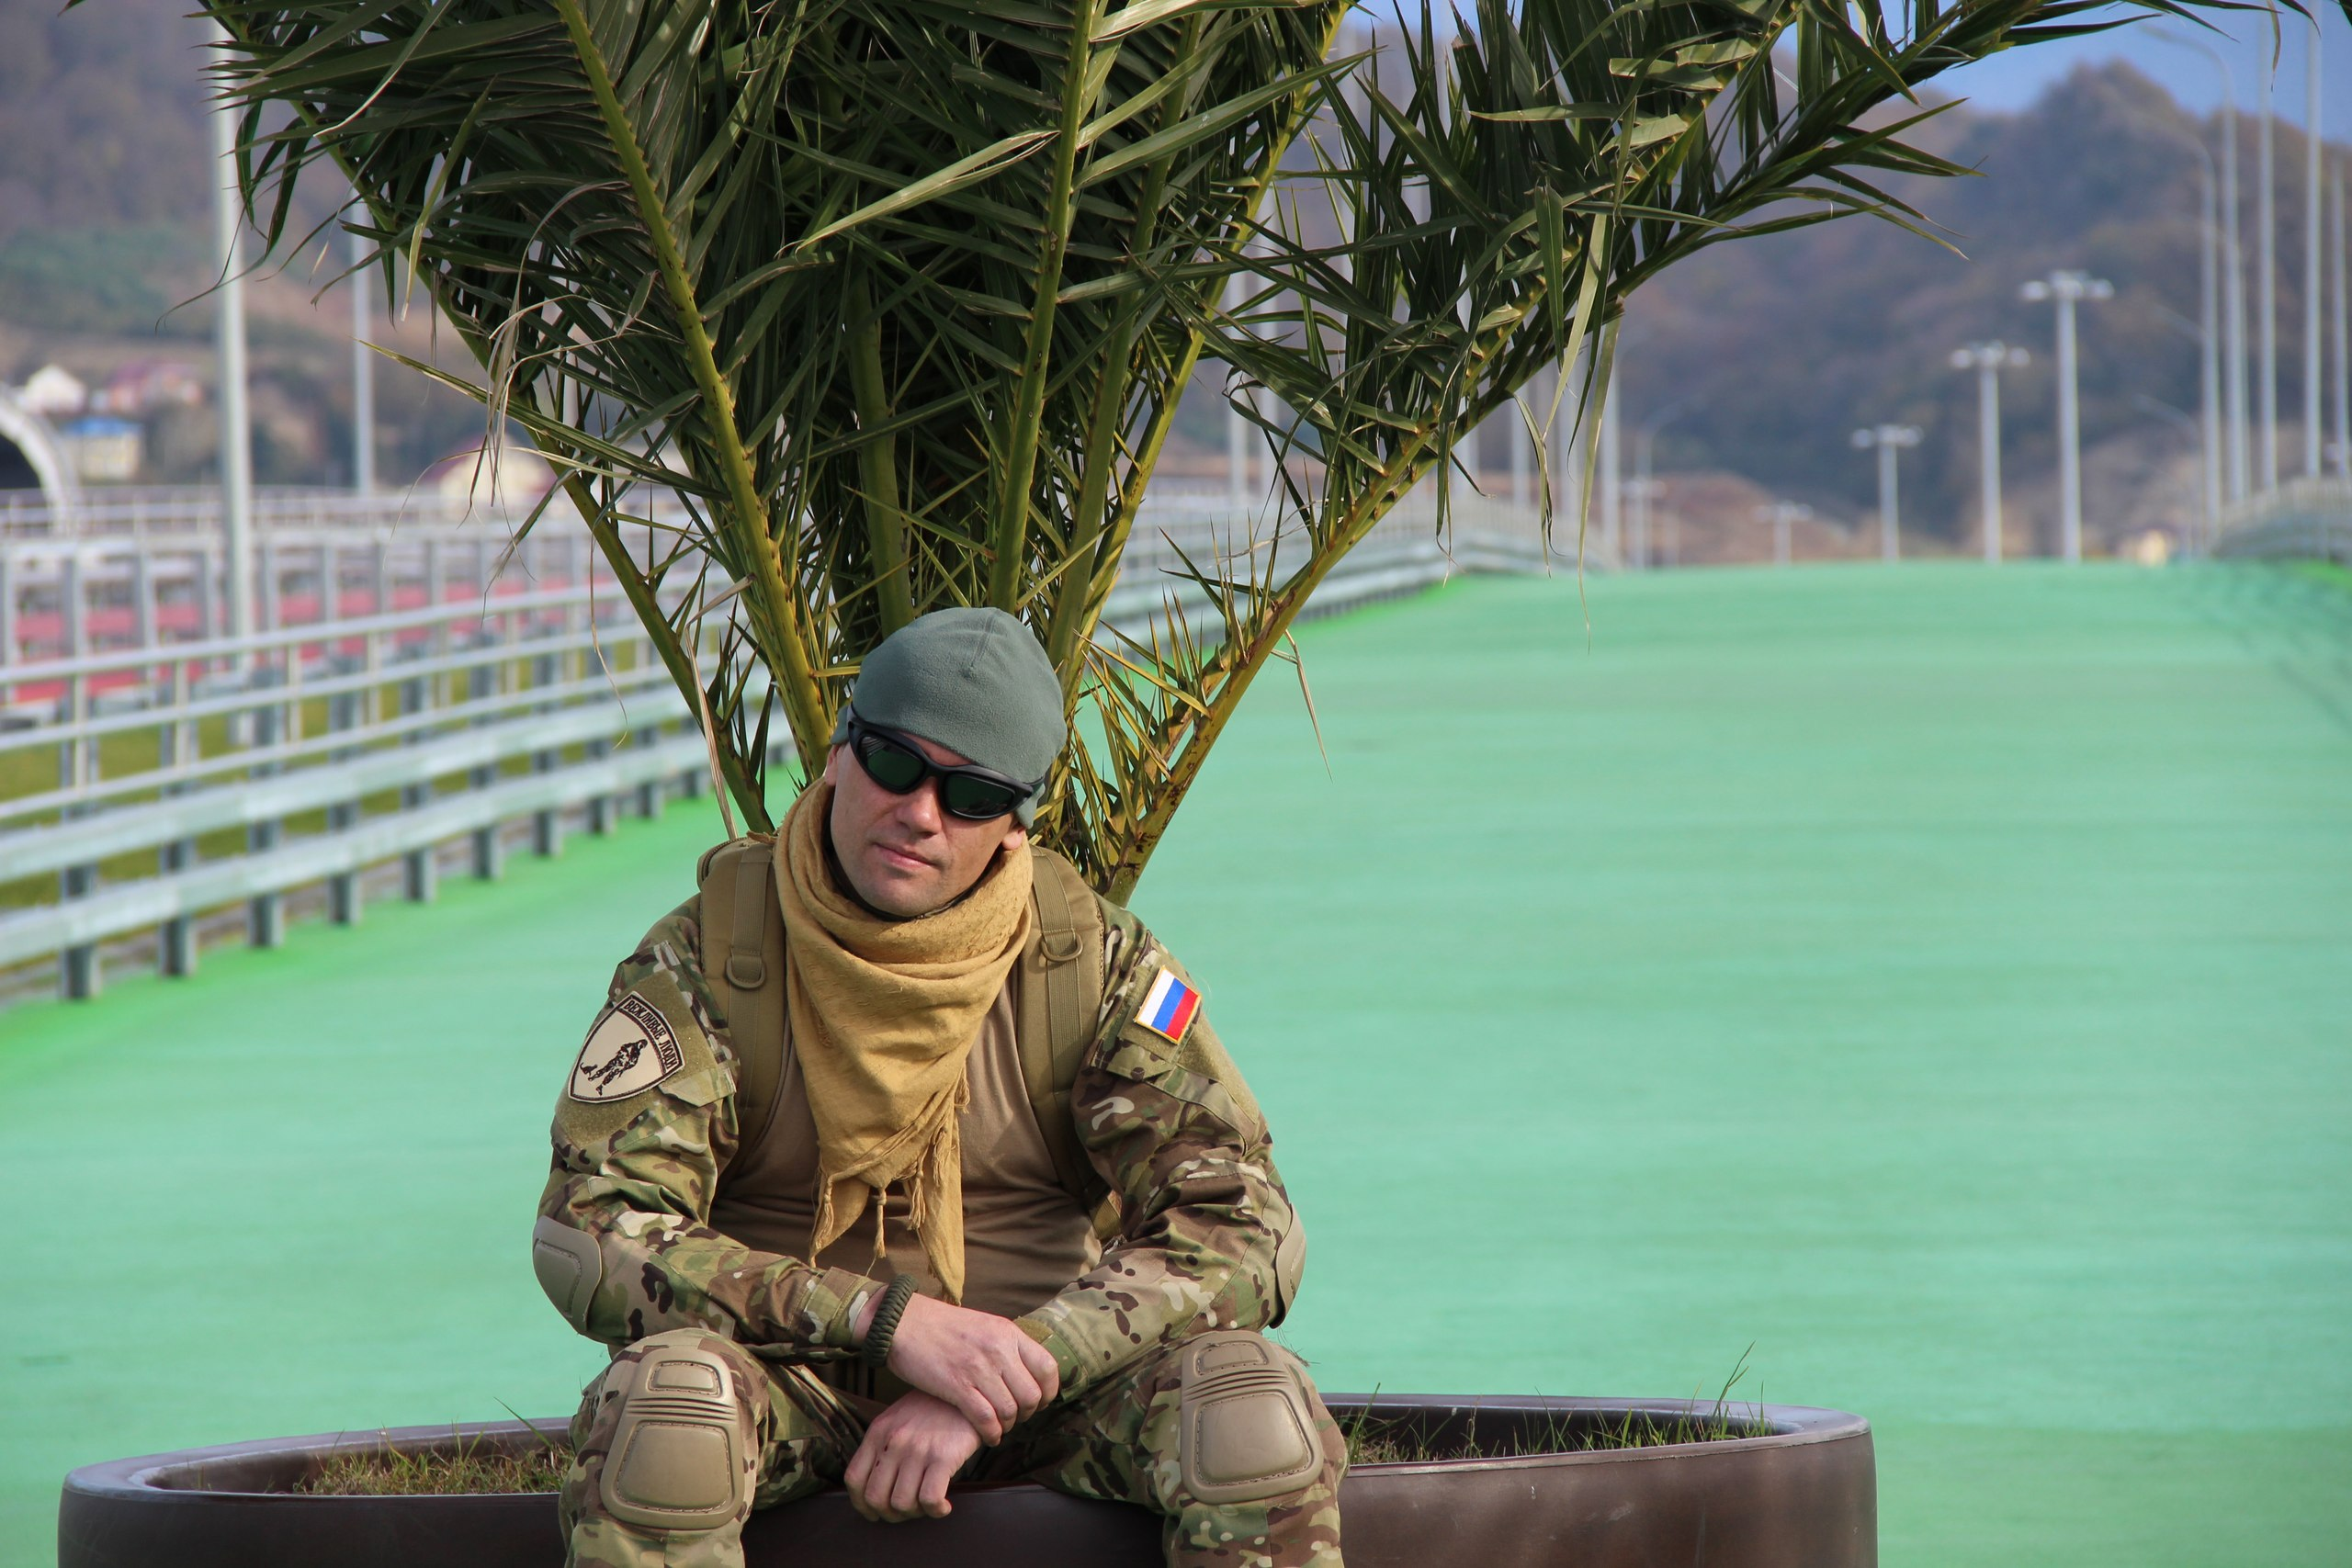 Russian Special Forces soldier Krivko in Sochi, photo added on Dec 4 2014